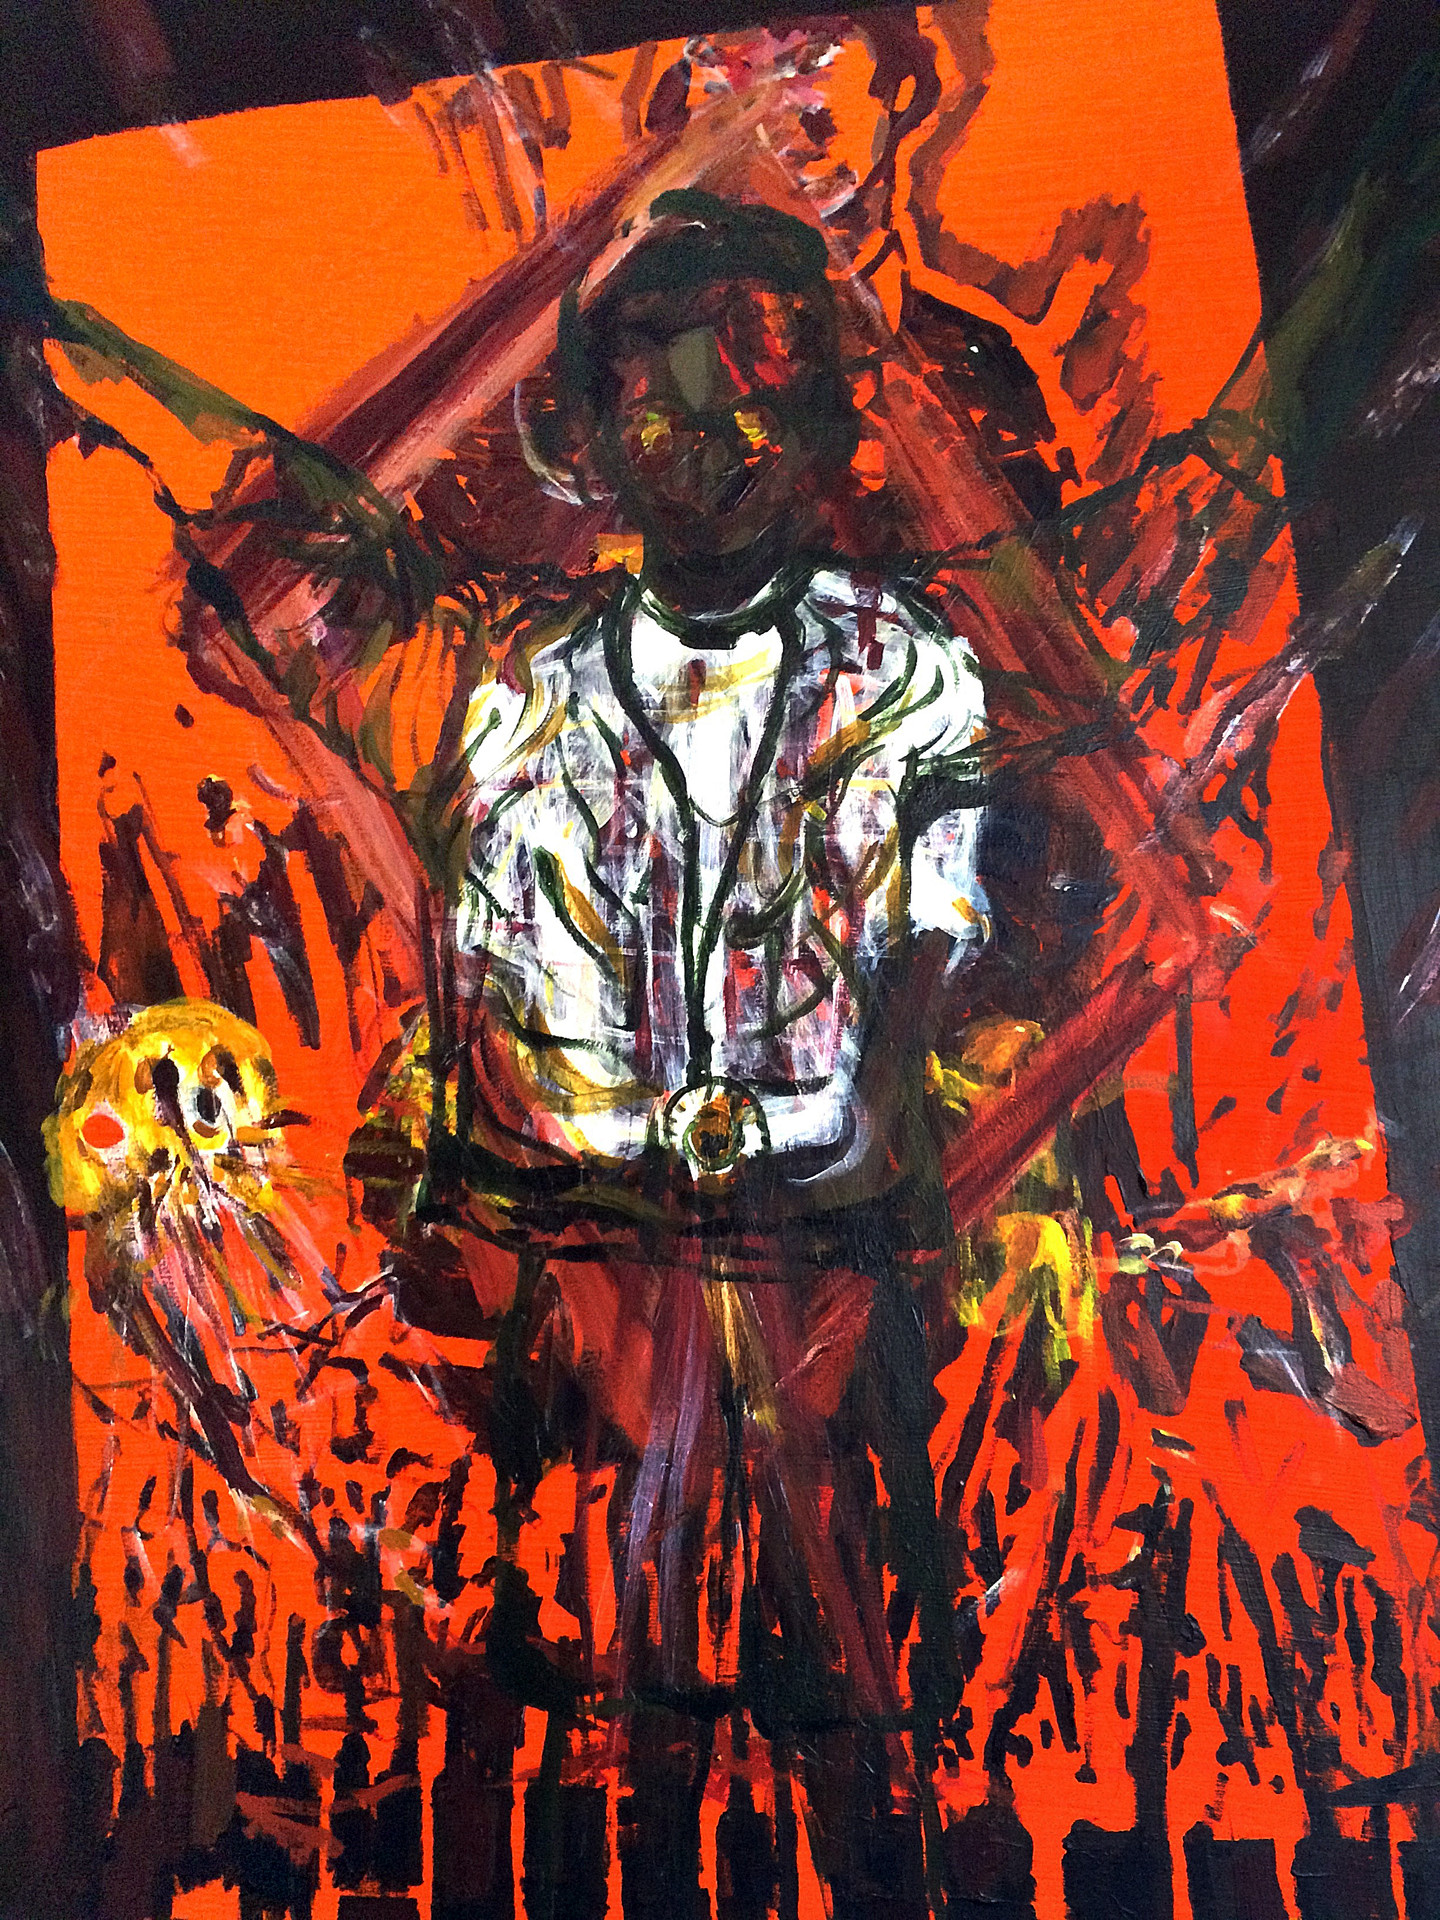 boy soldier, 40x34 inches, acrylic on canvas, 2015